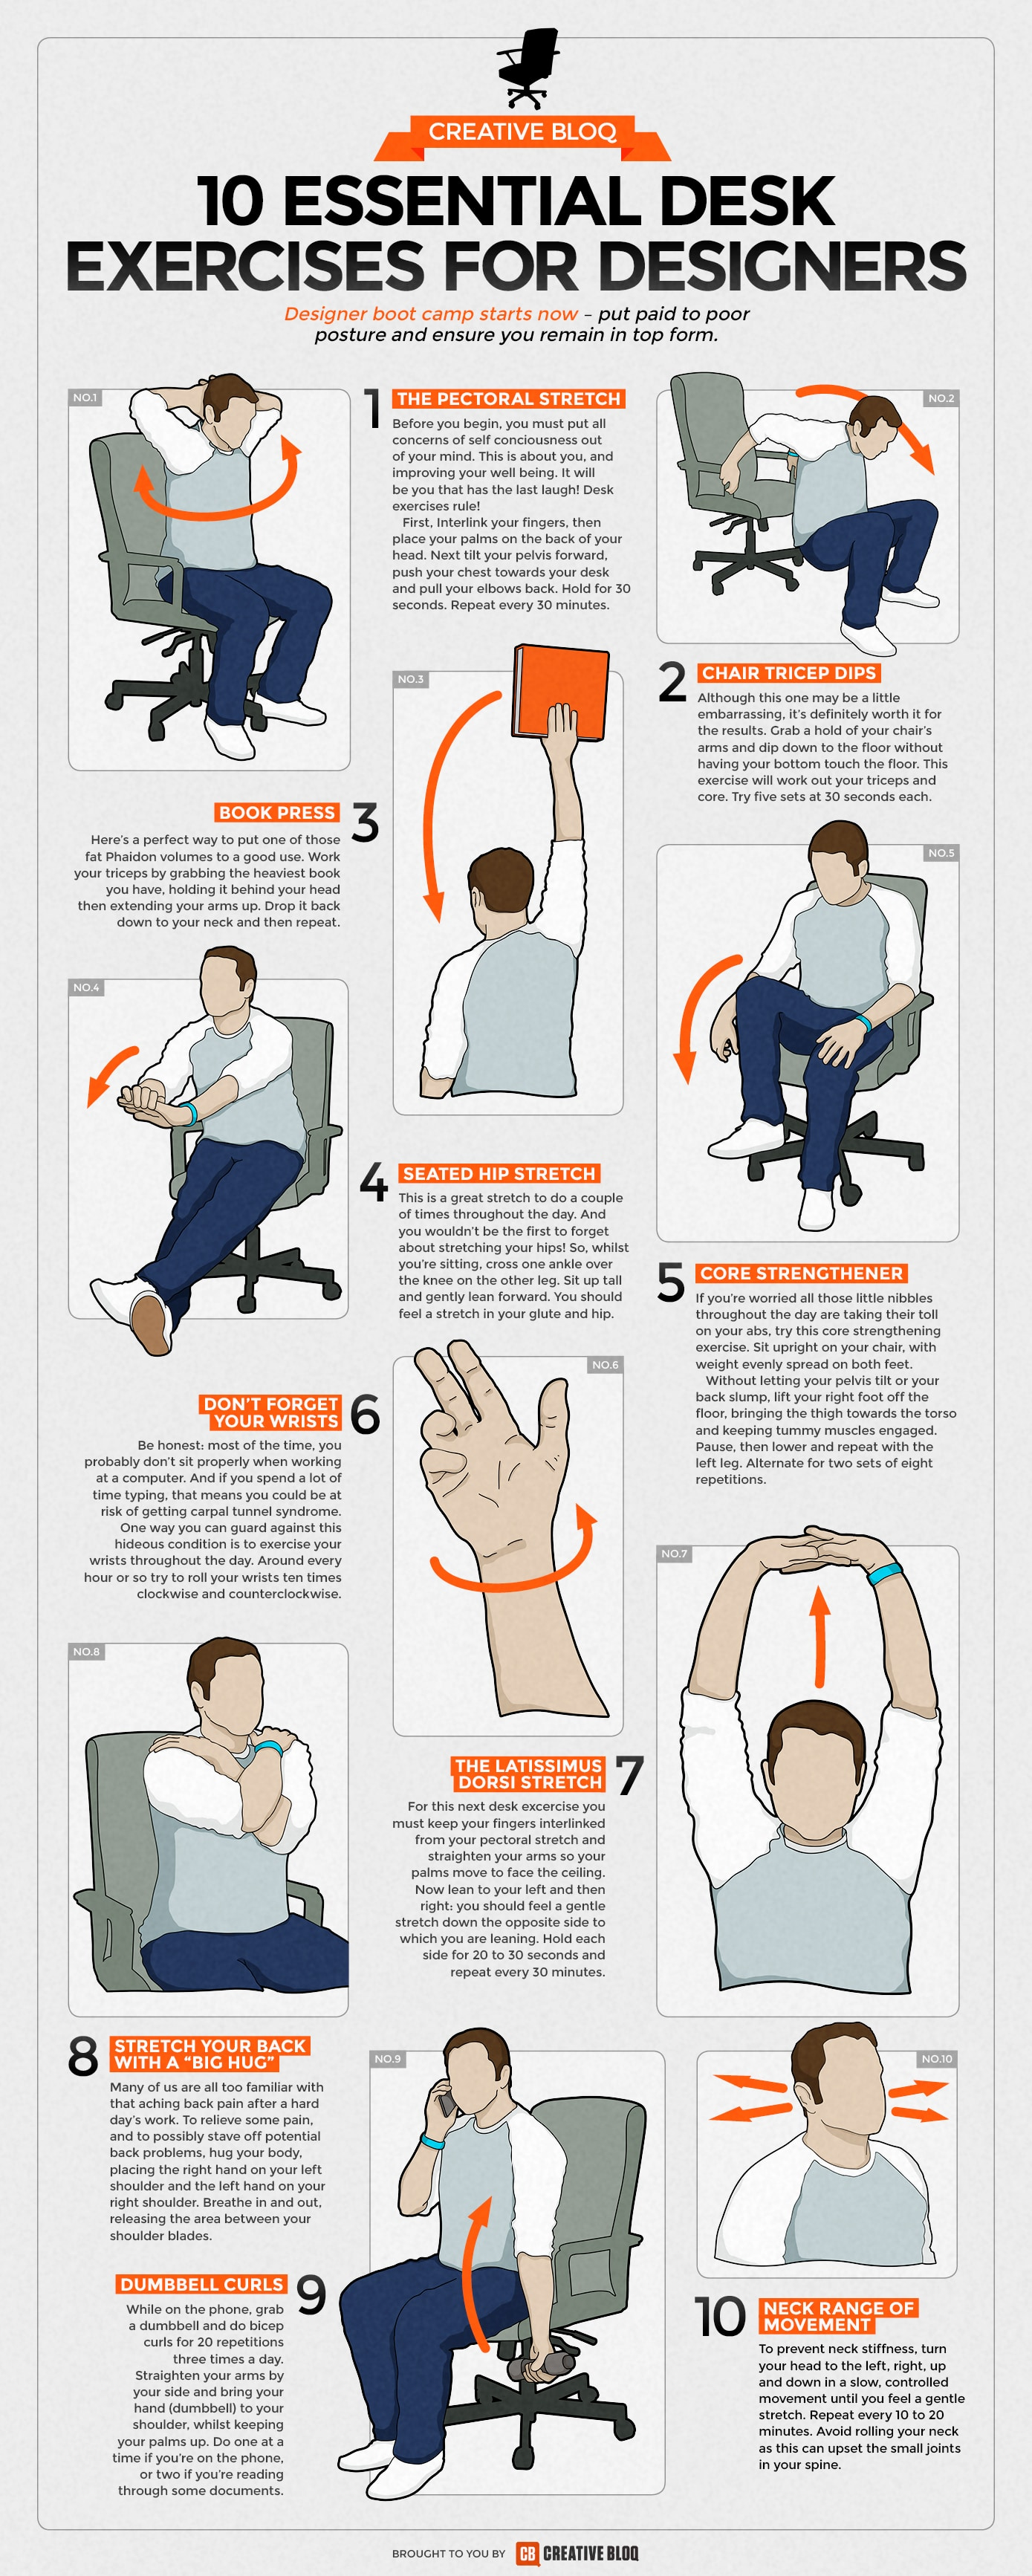 10 Essential Desk Exercises For Designers